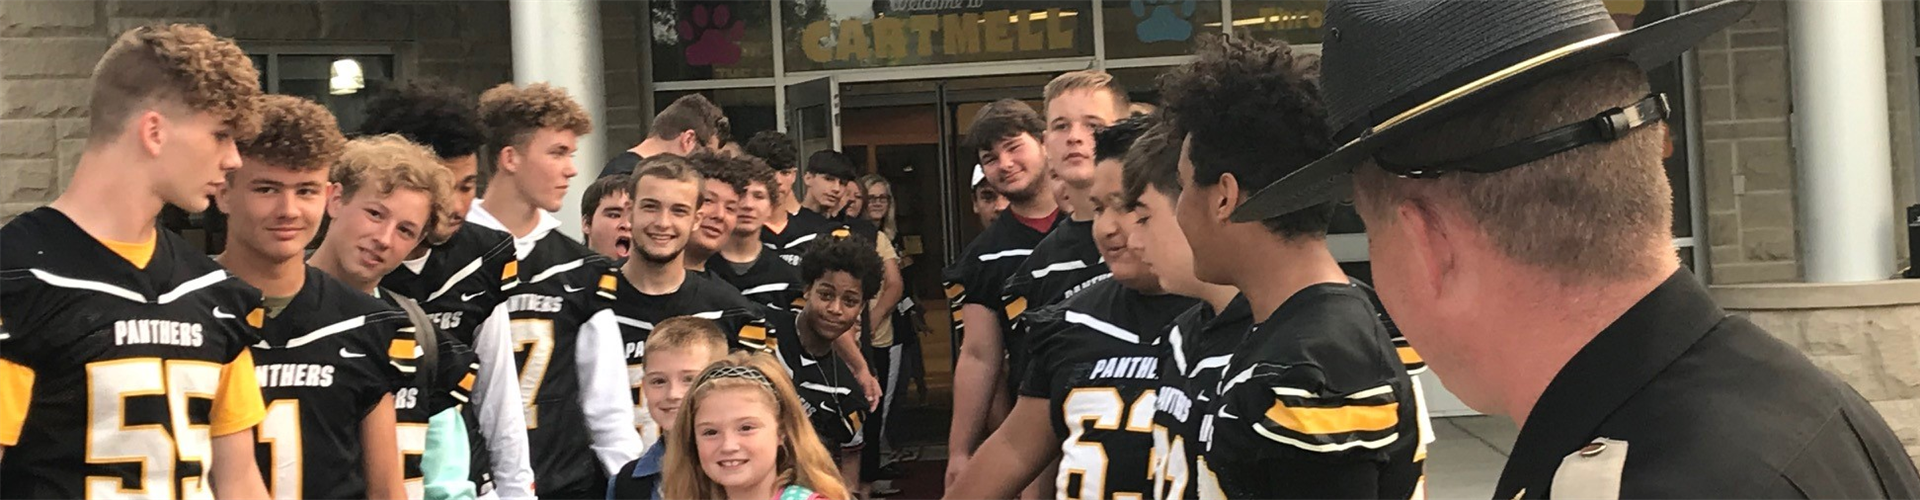 Cartmell students being greeted by the CCHS football team.